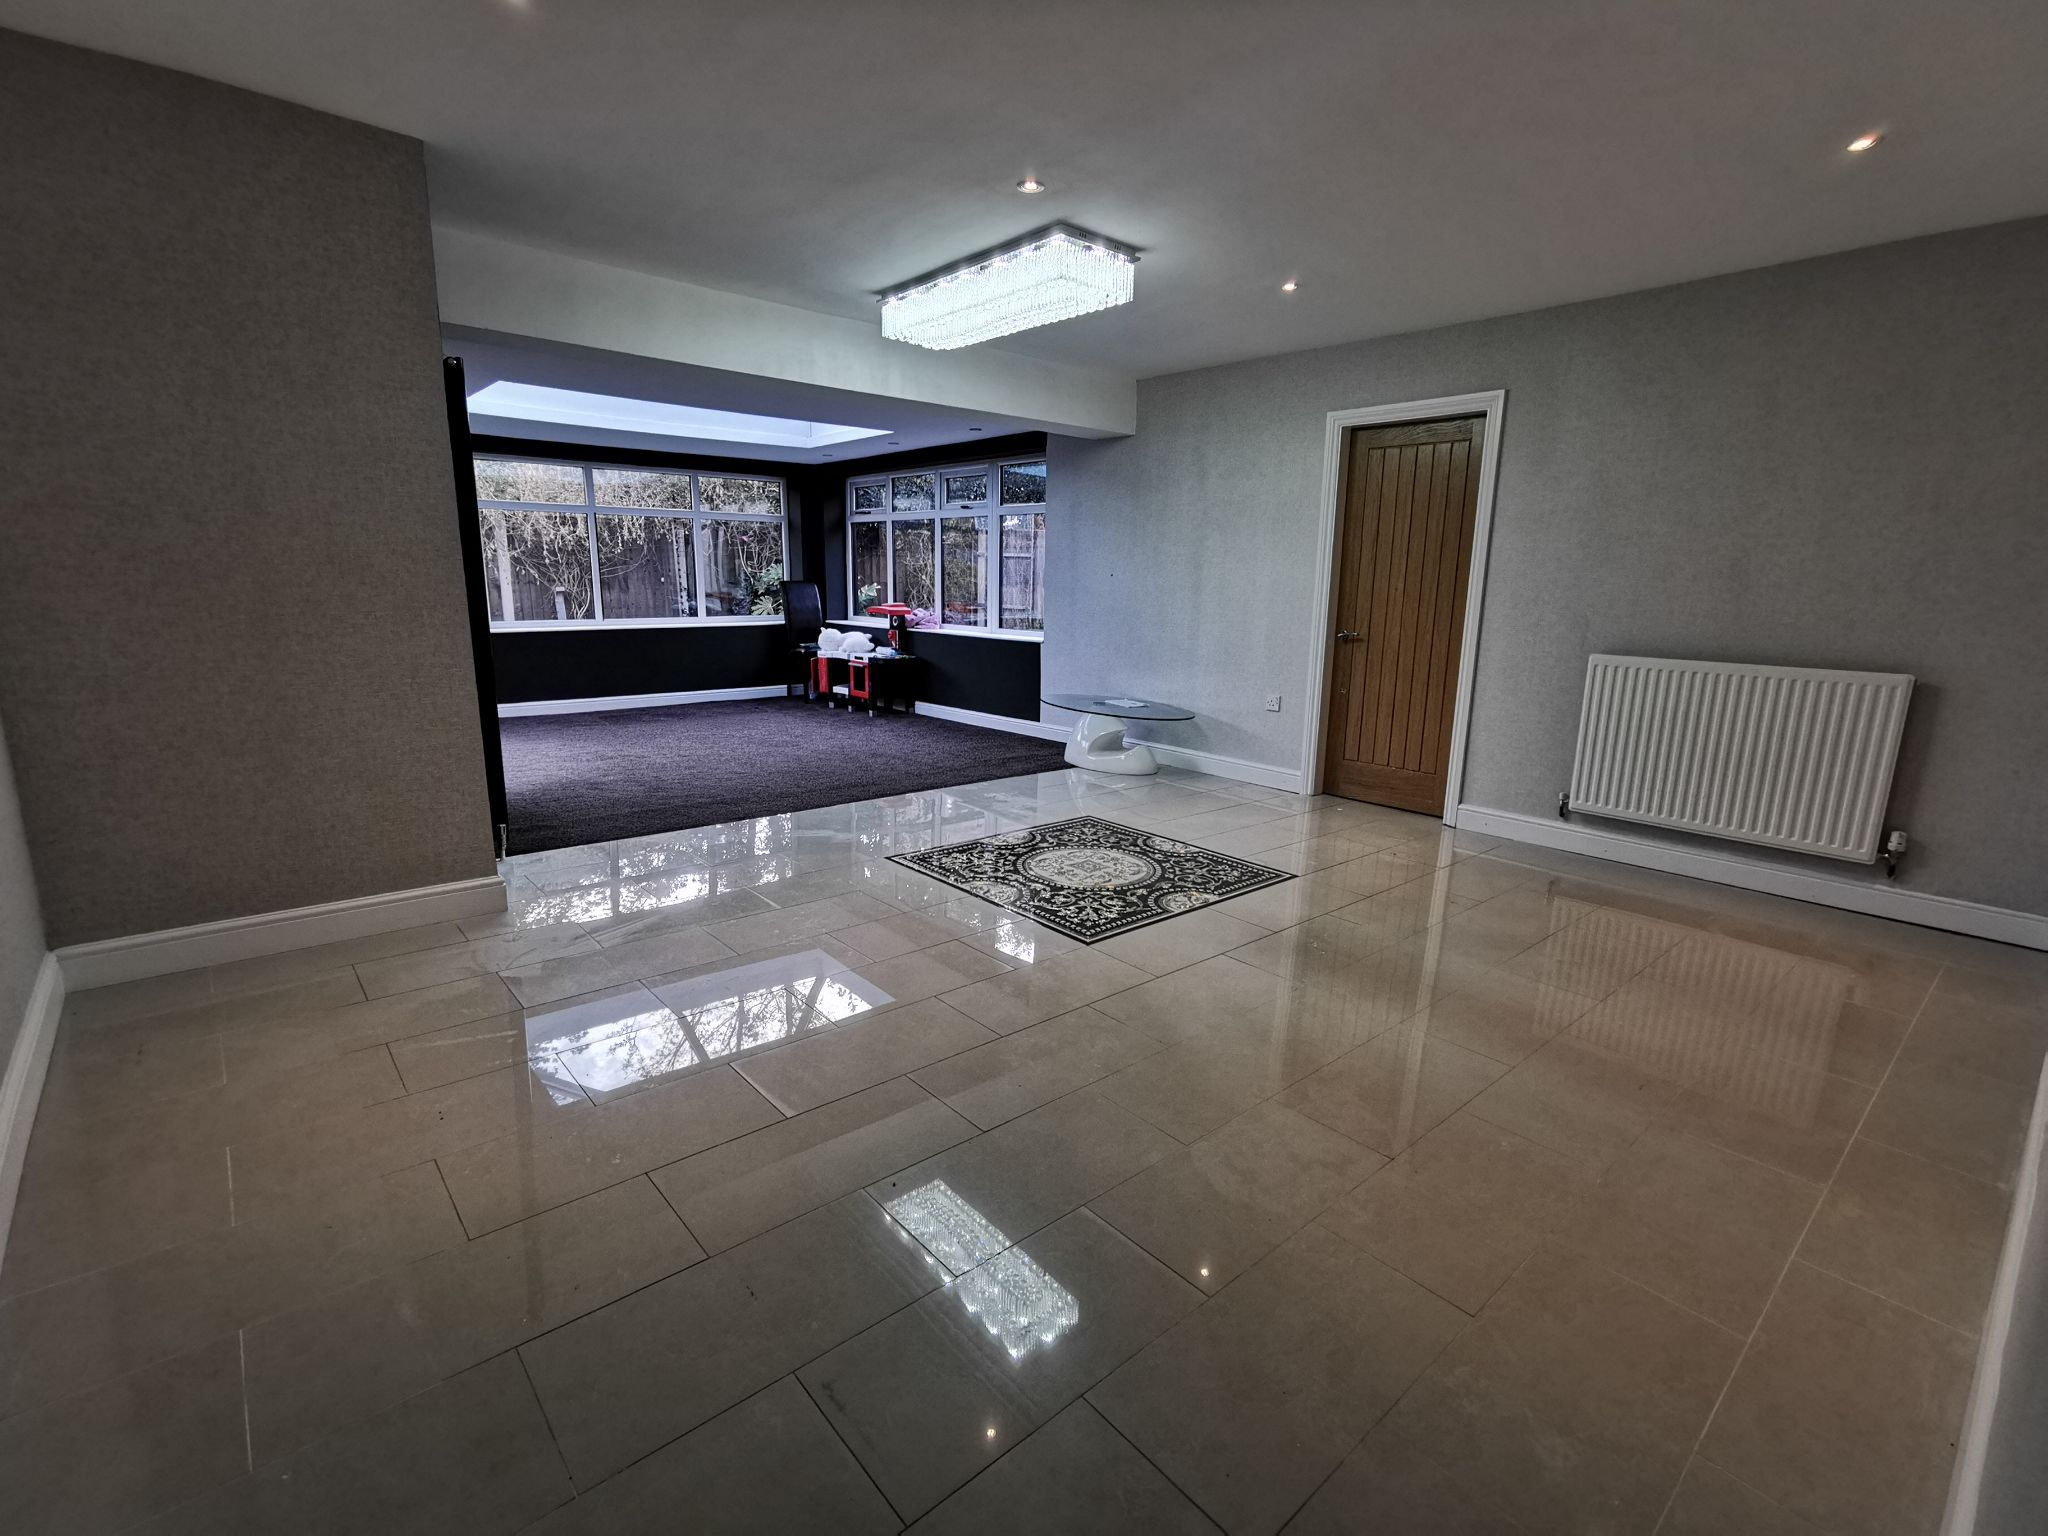 6 bedroom detached bungalow For Sale in Bradford - Photograph 7.